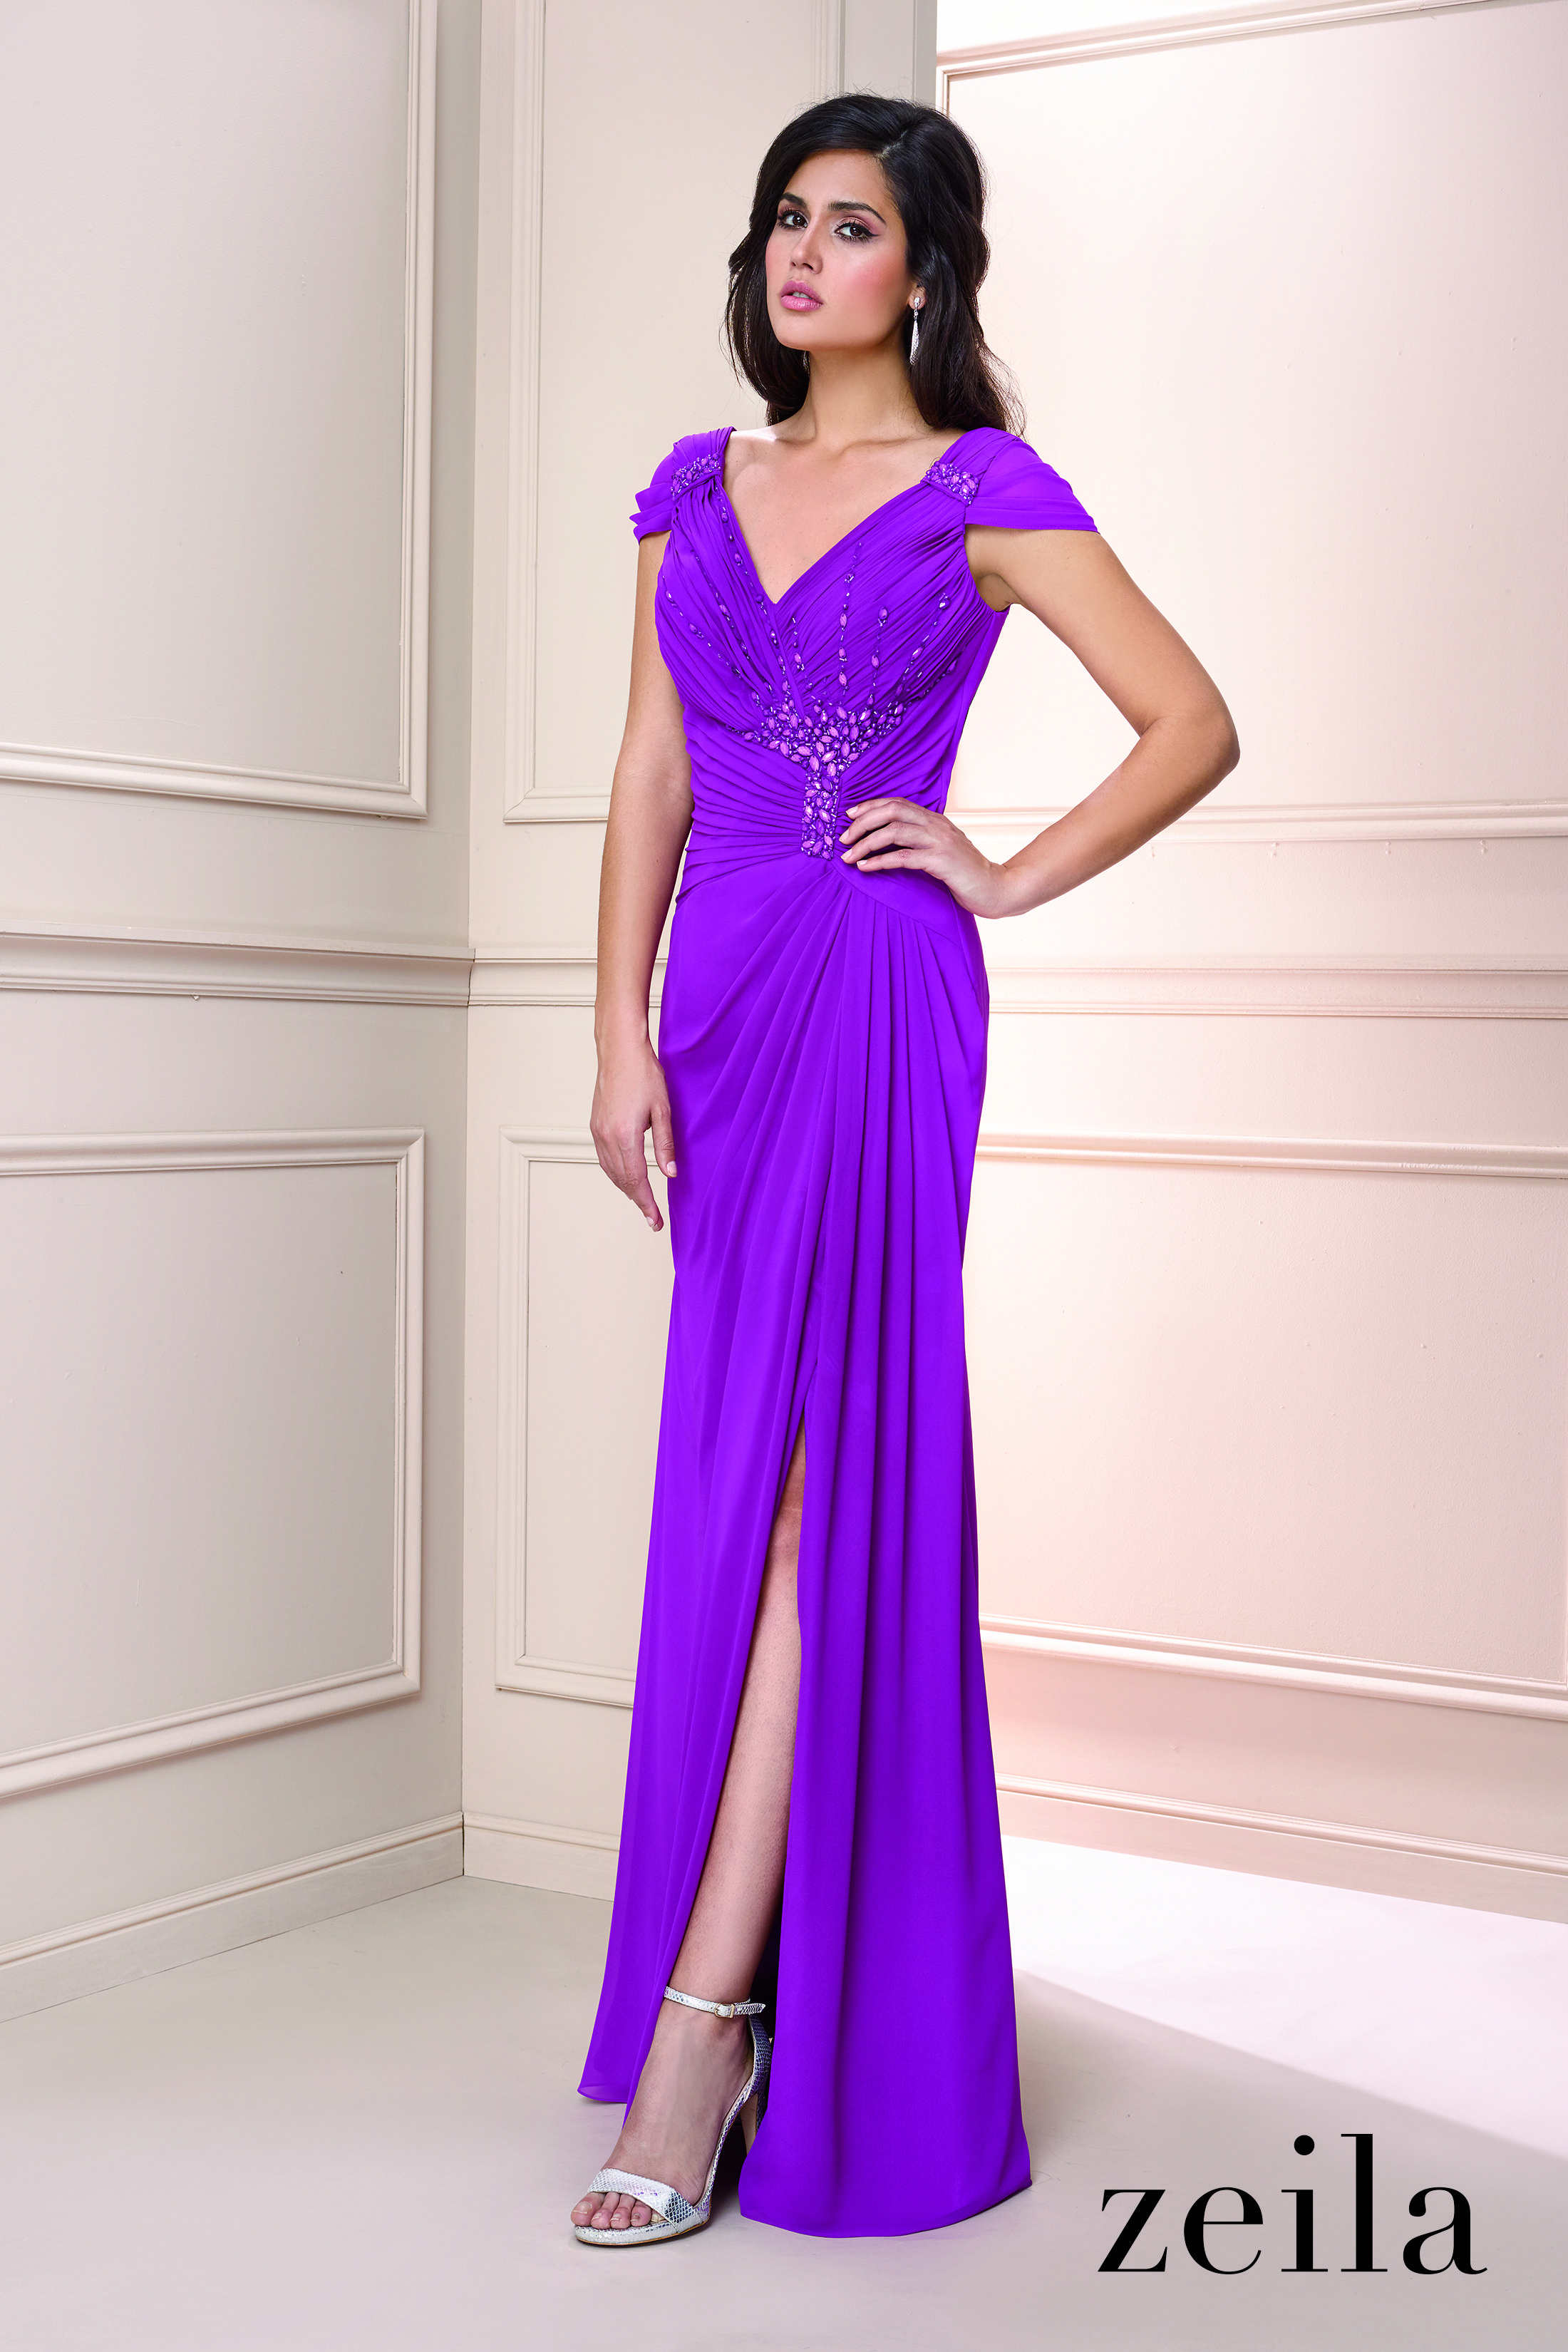 Stunning party dresses just for you in Inverness